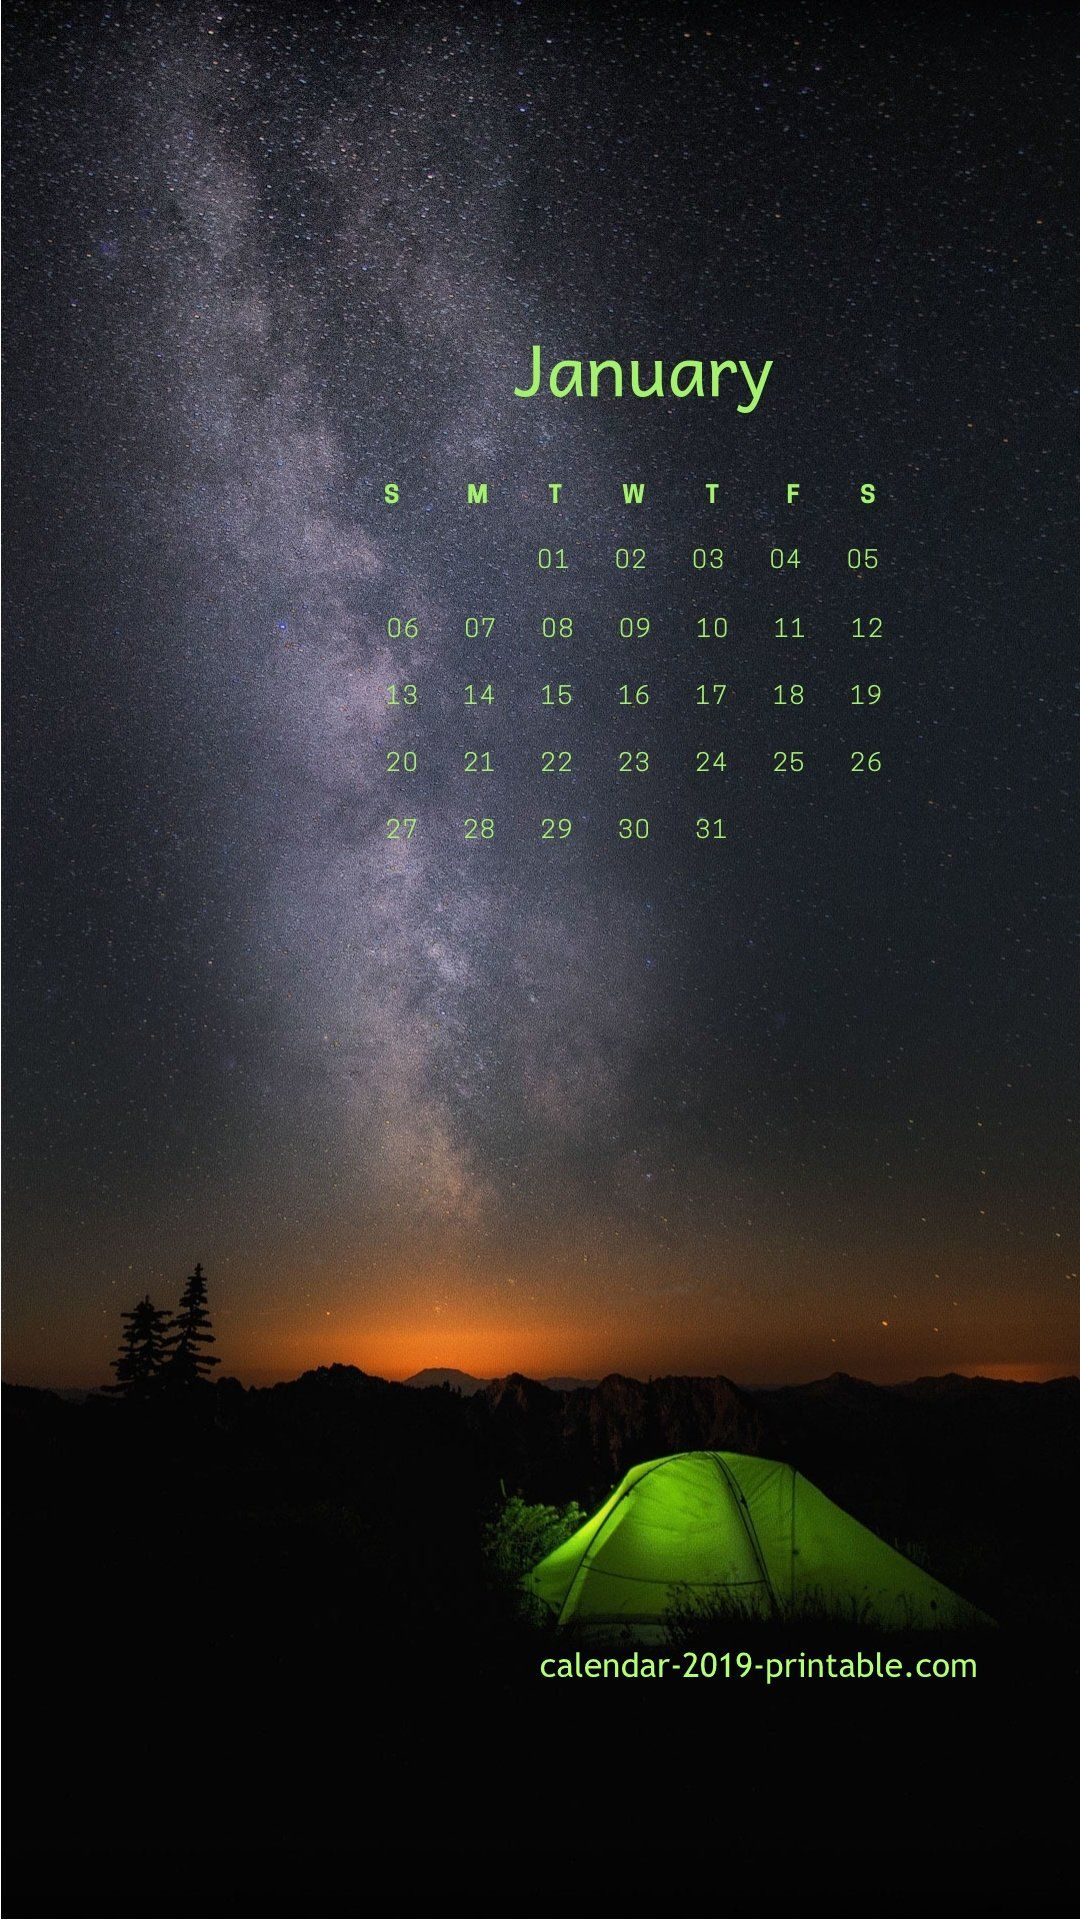 January 2019 Iphone Lockscreen Calendar | Calendar Wallpaper throughout Iphone Lock Screen Calendar